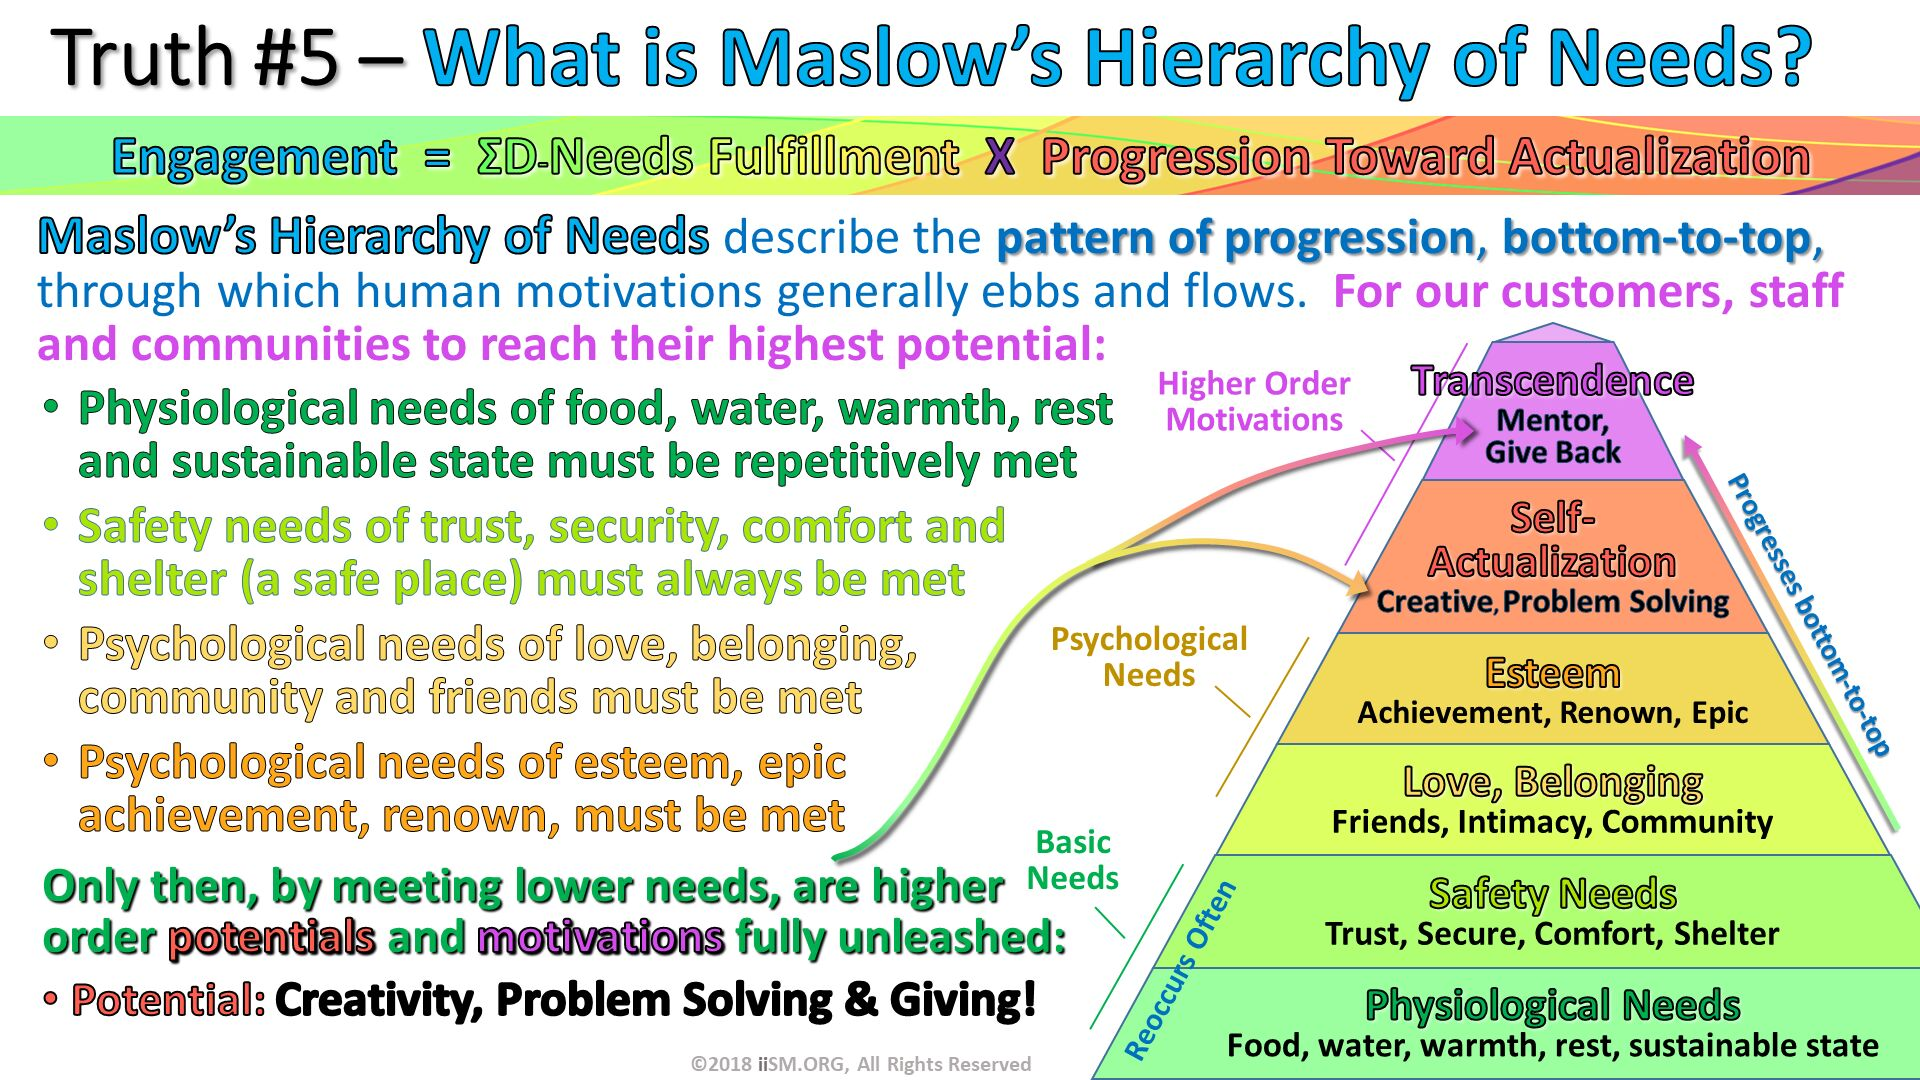 Maslow's Hierarchy of Needs describe the pattern of progression, bottom-to-top, through which human motivations generally ebbs and flows.  For our customers, staff and communities to reach their highest potential: . Truth #5 – What is Maslow's Hierarchy of Needs? .  . ©2018 iiSM.ORG, All Rights Reserved. Only then, by meeting lower needs, are higher order potentials and motivations fully unleashed: Potential: Creativity, Problem Solving & Giving!. Physiological needs of food, water, warmth, rest and sustainable state must be repetitively met Safety needs of trust, security, comfort and shelter (a safe place) must always be met Psychological needs of love, belonging, community and friends must be met Psychological needs of esteem, epic achievement, renown, must be met. Progresses bottom-to-top. Reoccurs Often. Engagement  =  ΣD-Needs Fulfillment  X  Progression Toward Actualization.